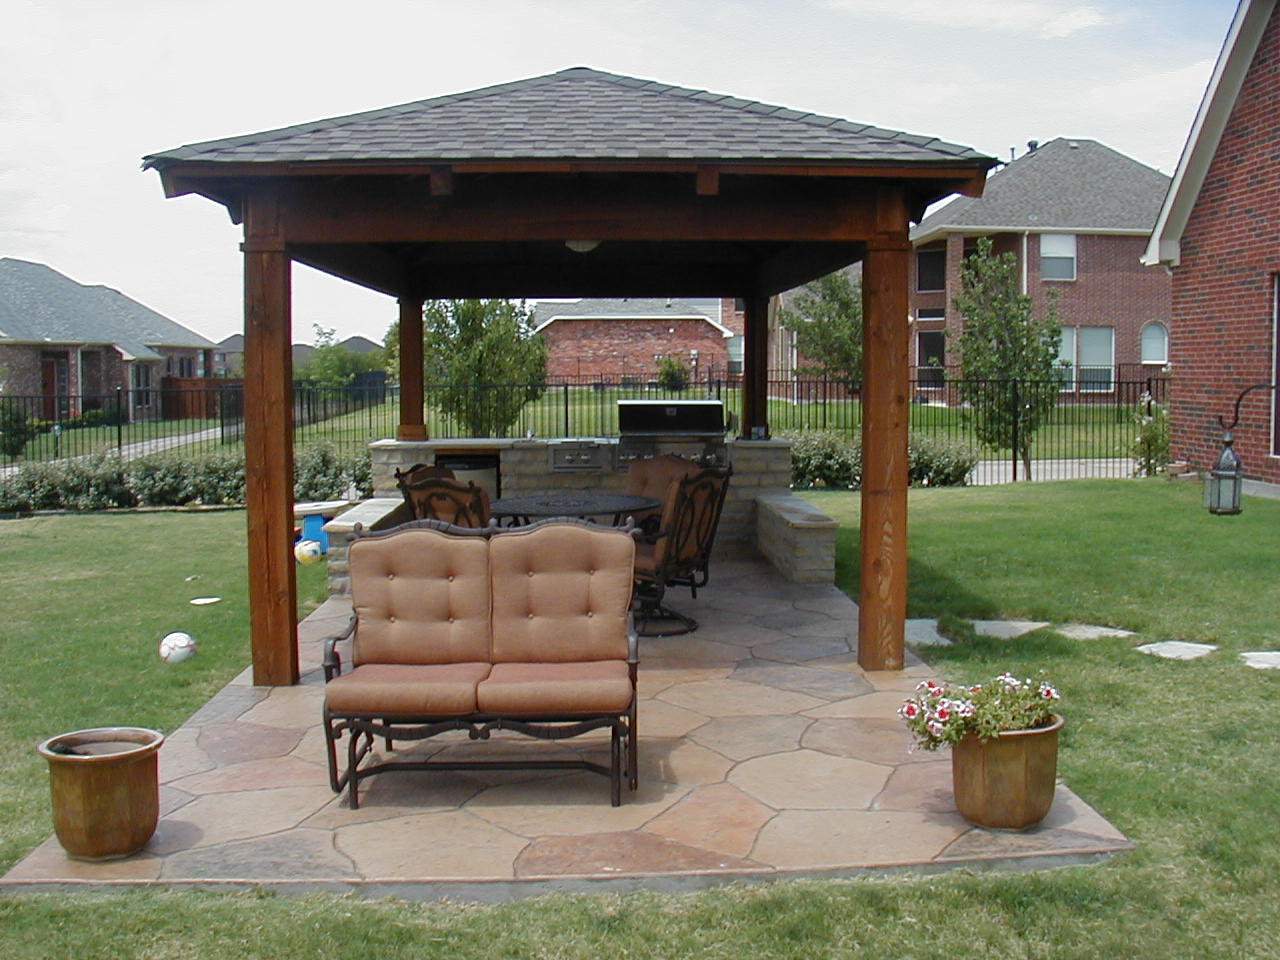 Outdoor covered patio ideas reqg design on vine for Backyard patio design ideas